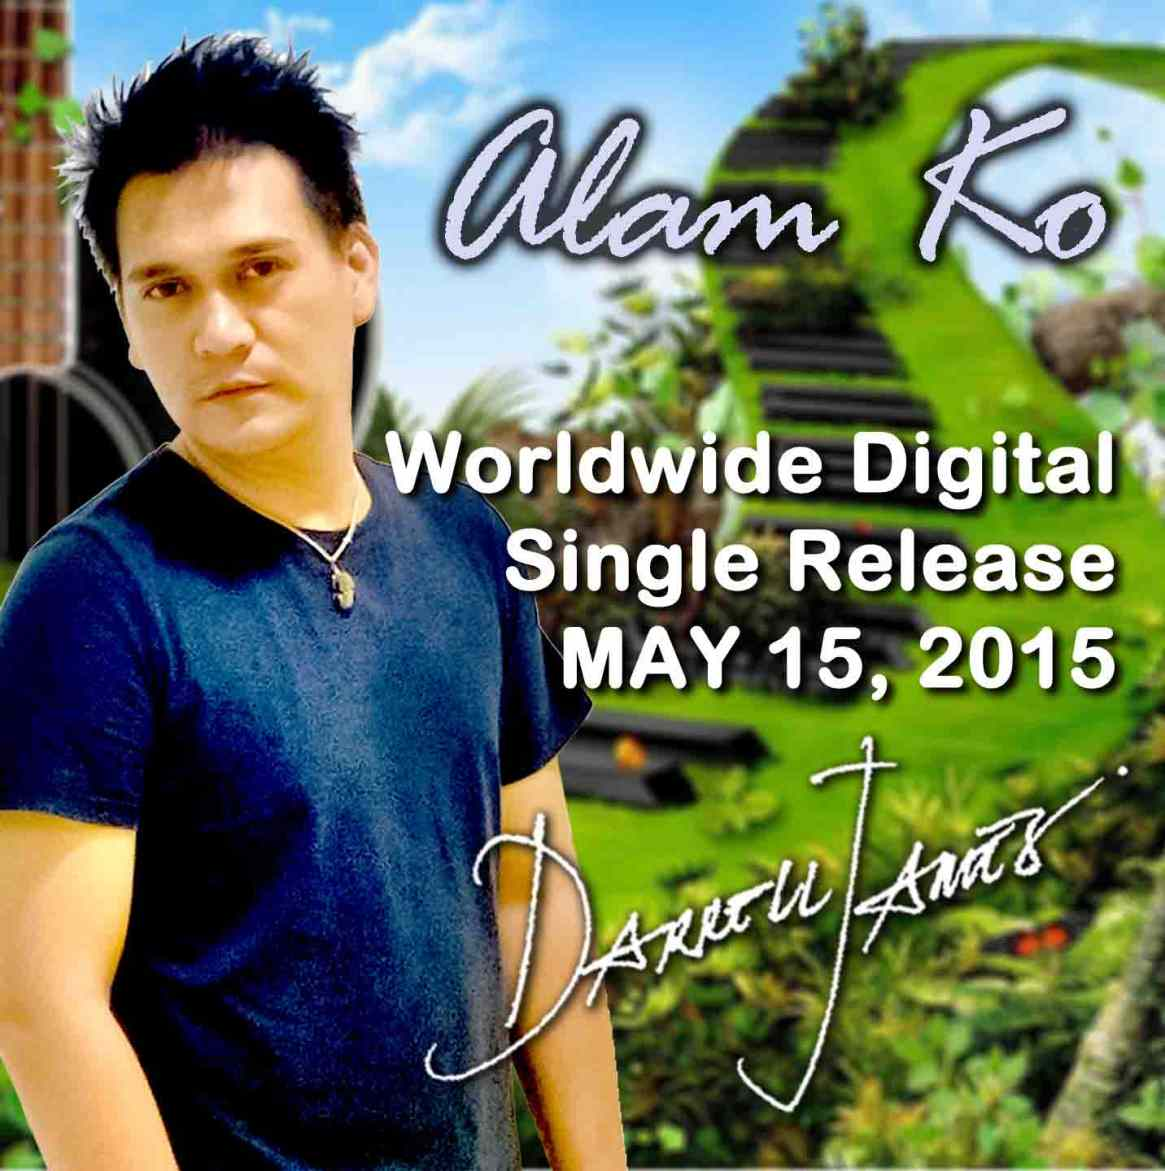 Darrell James' ALAM KO Single Out On May 15, 2015